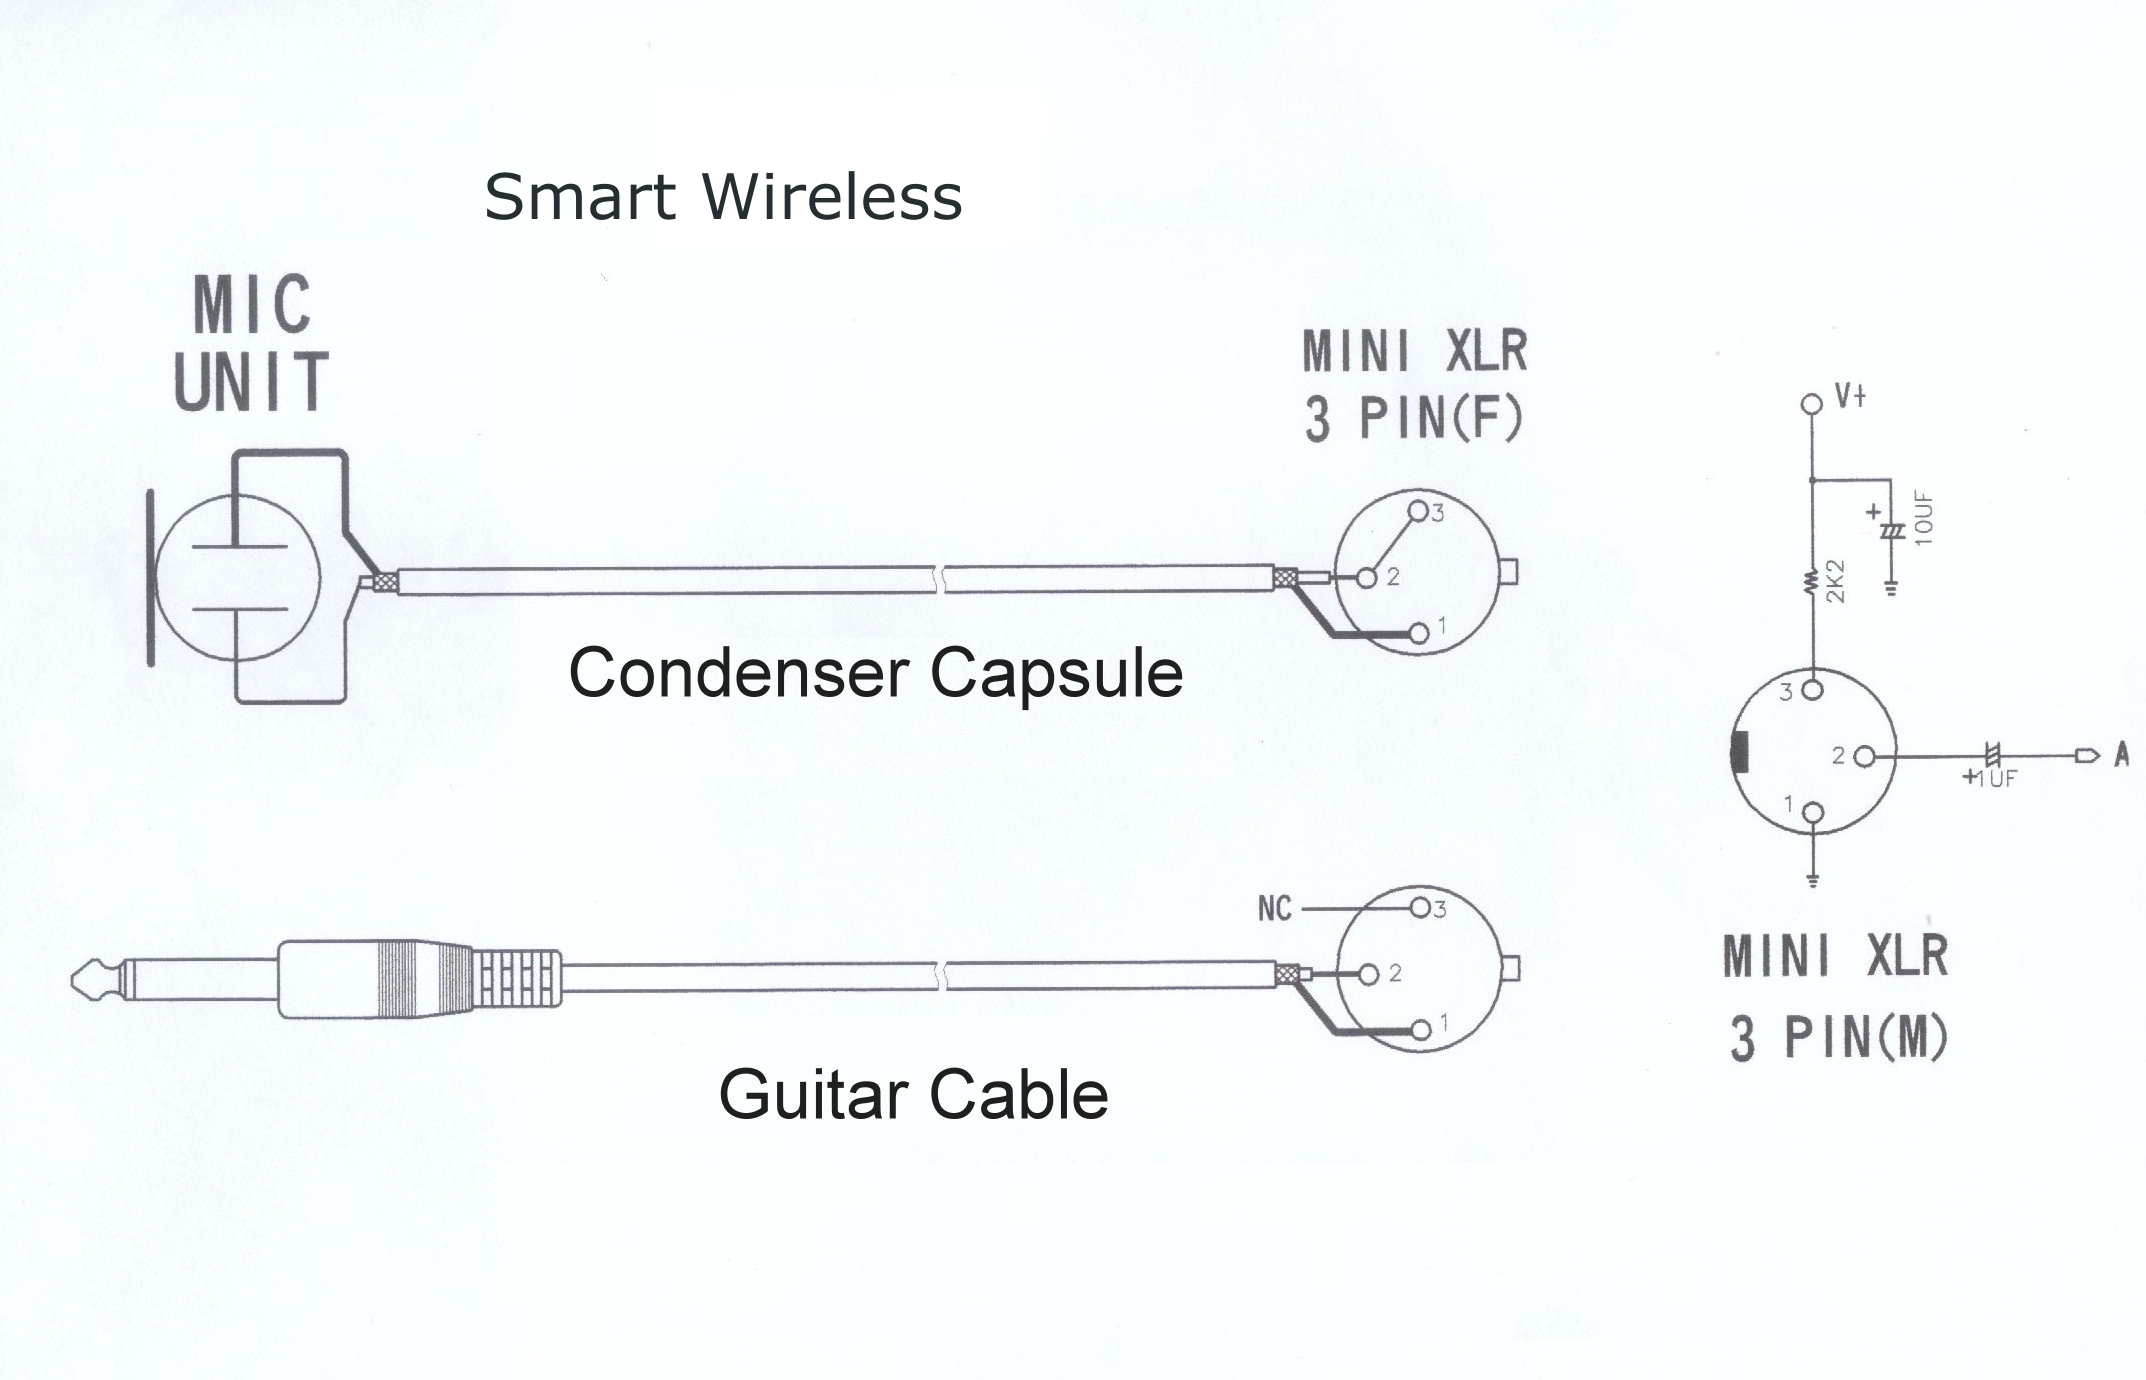 XLR Balanced Phone Unbalanced xlr mic wiring diagram xlr audio wiring diagram \u2022 free wiring 2 wire microphone wiring diagram at gsmx.co